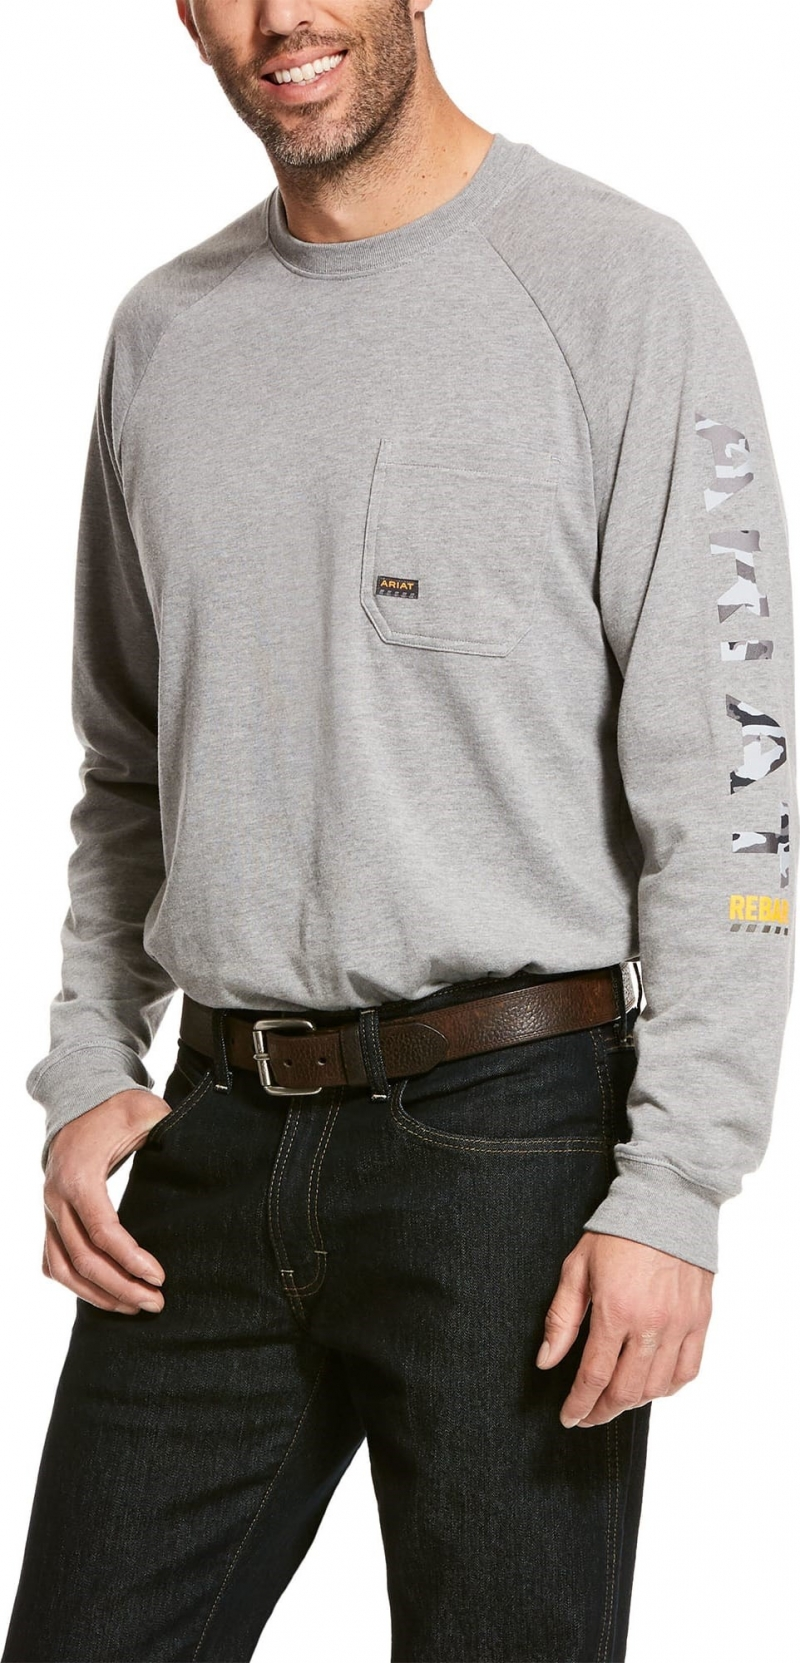 Ariat Rebar Cottonstrong Graphic Crewneck L/S T-Shirt - Heather Grey